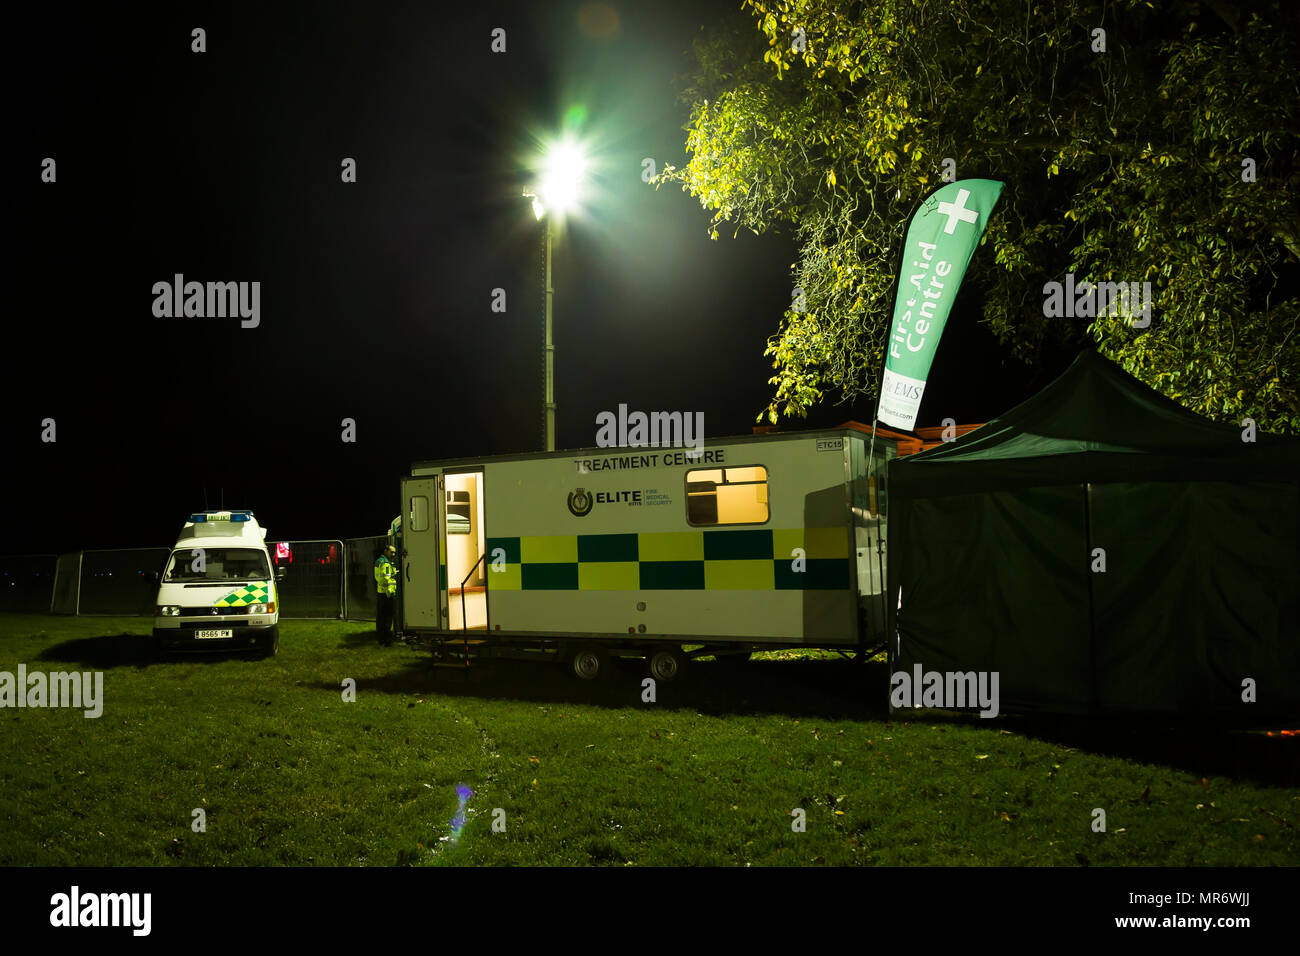 A mobile emergency unit at a firework display at November 5th firework display and celebrations. - Stock Image